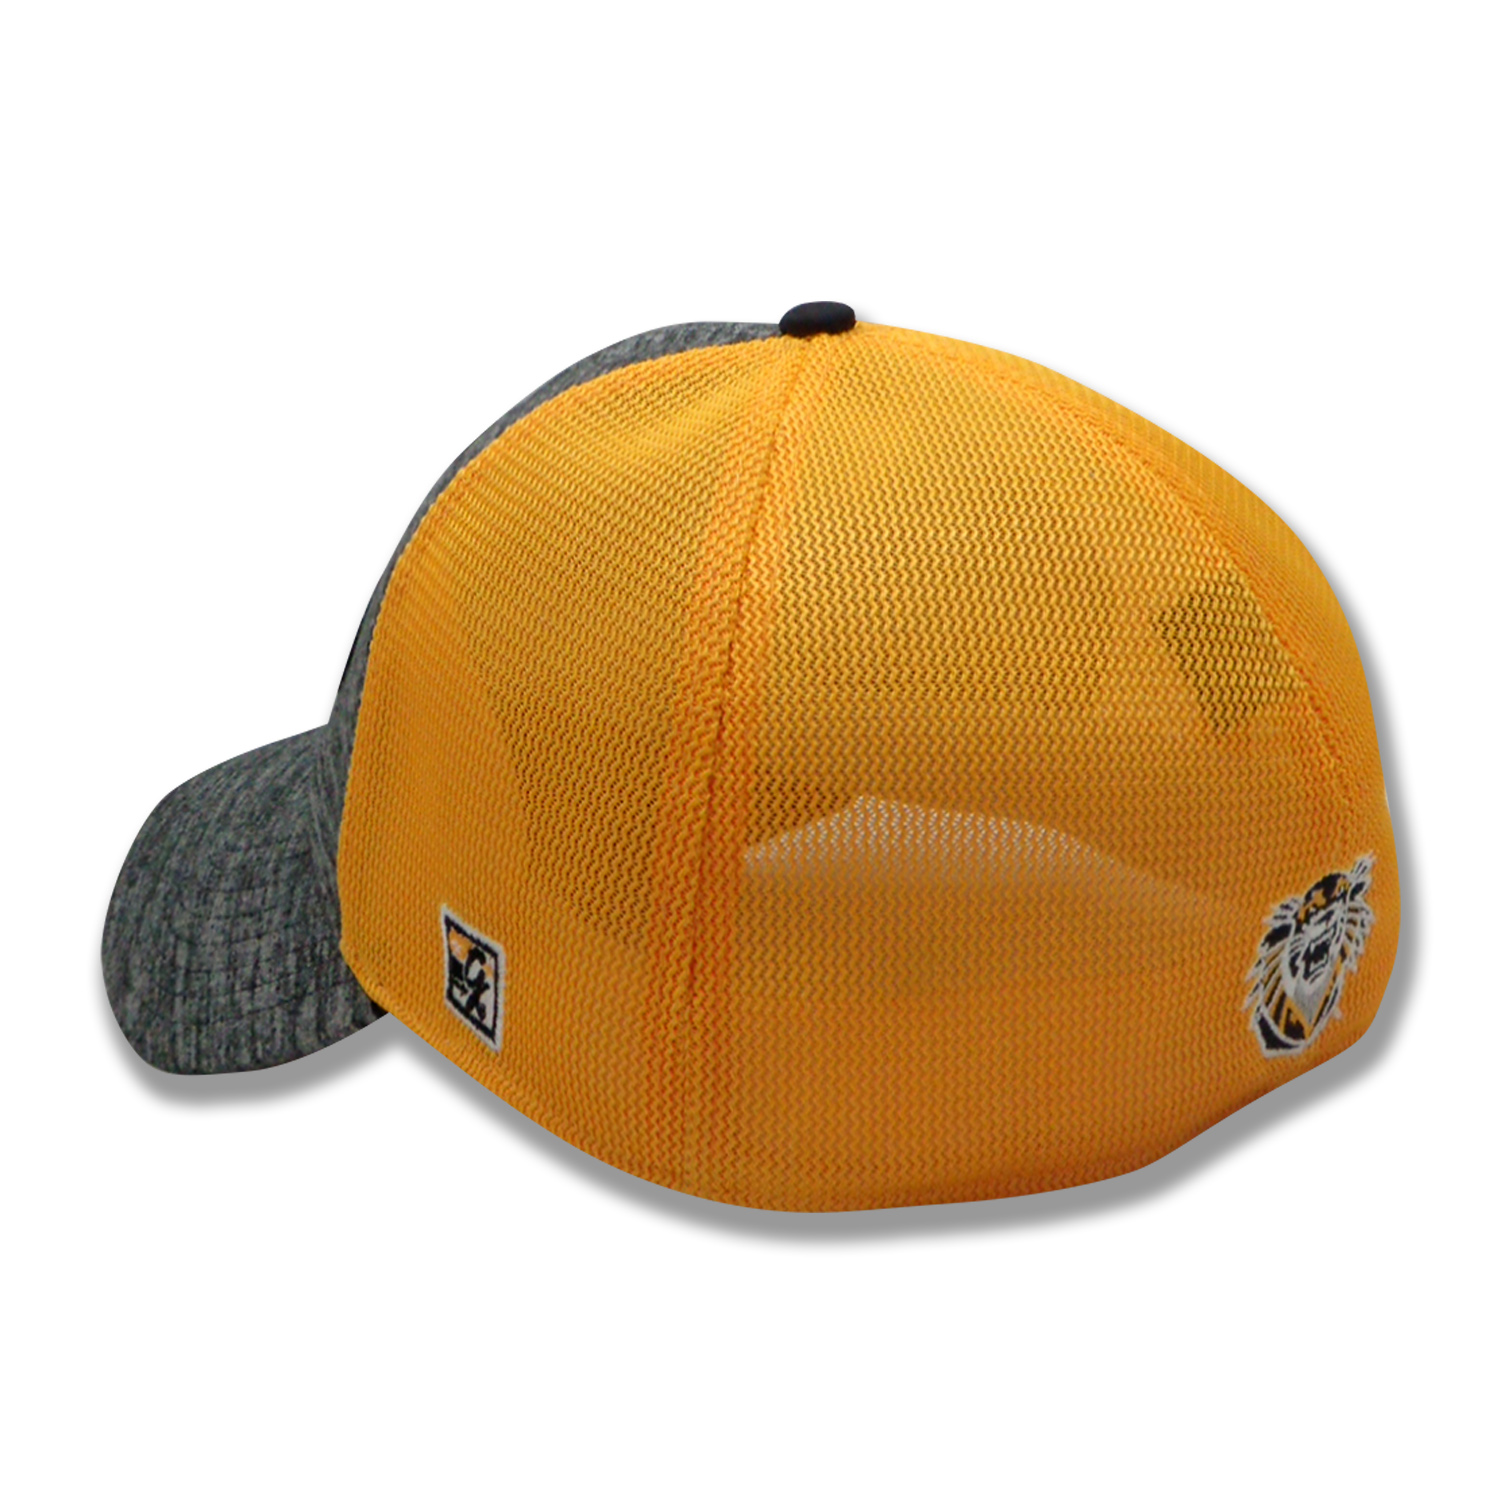 Alternative Image for the Tigers FHSU Athletic Heather and Diamond Mesh Stretch-Fit Hat, Black Heater Gold Mesh, The Game product